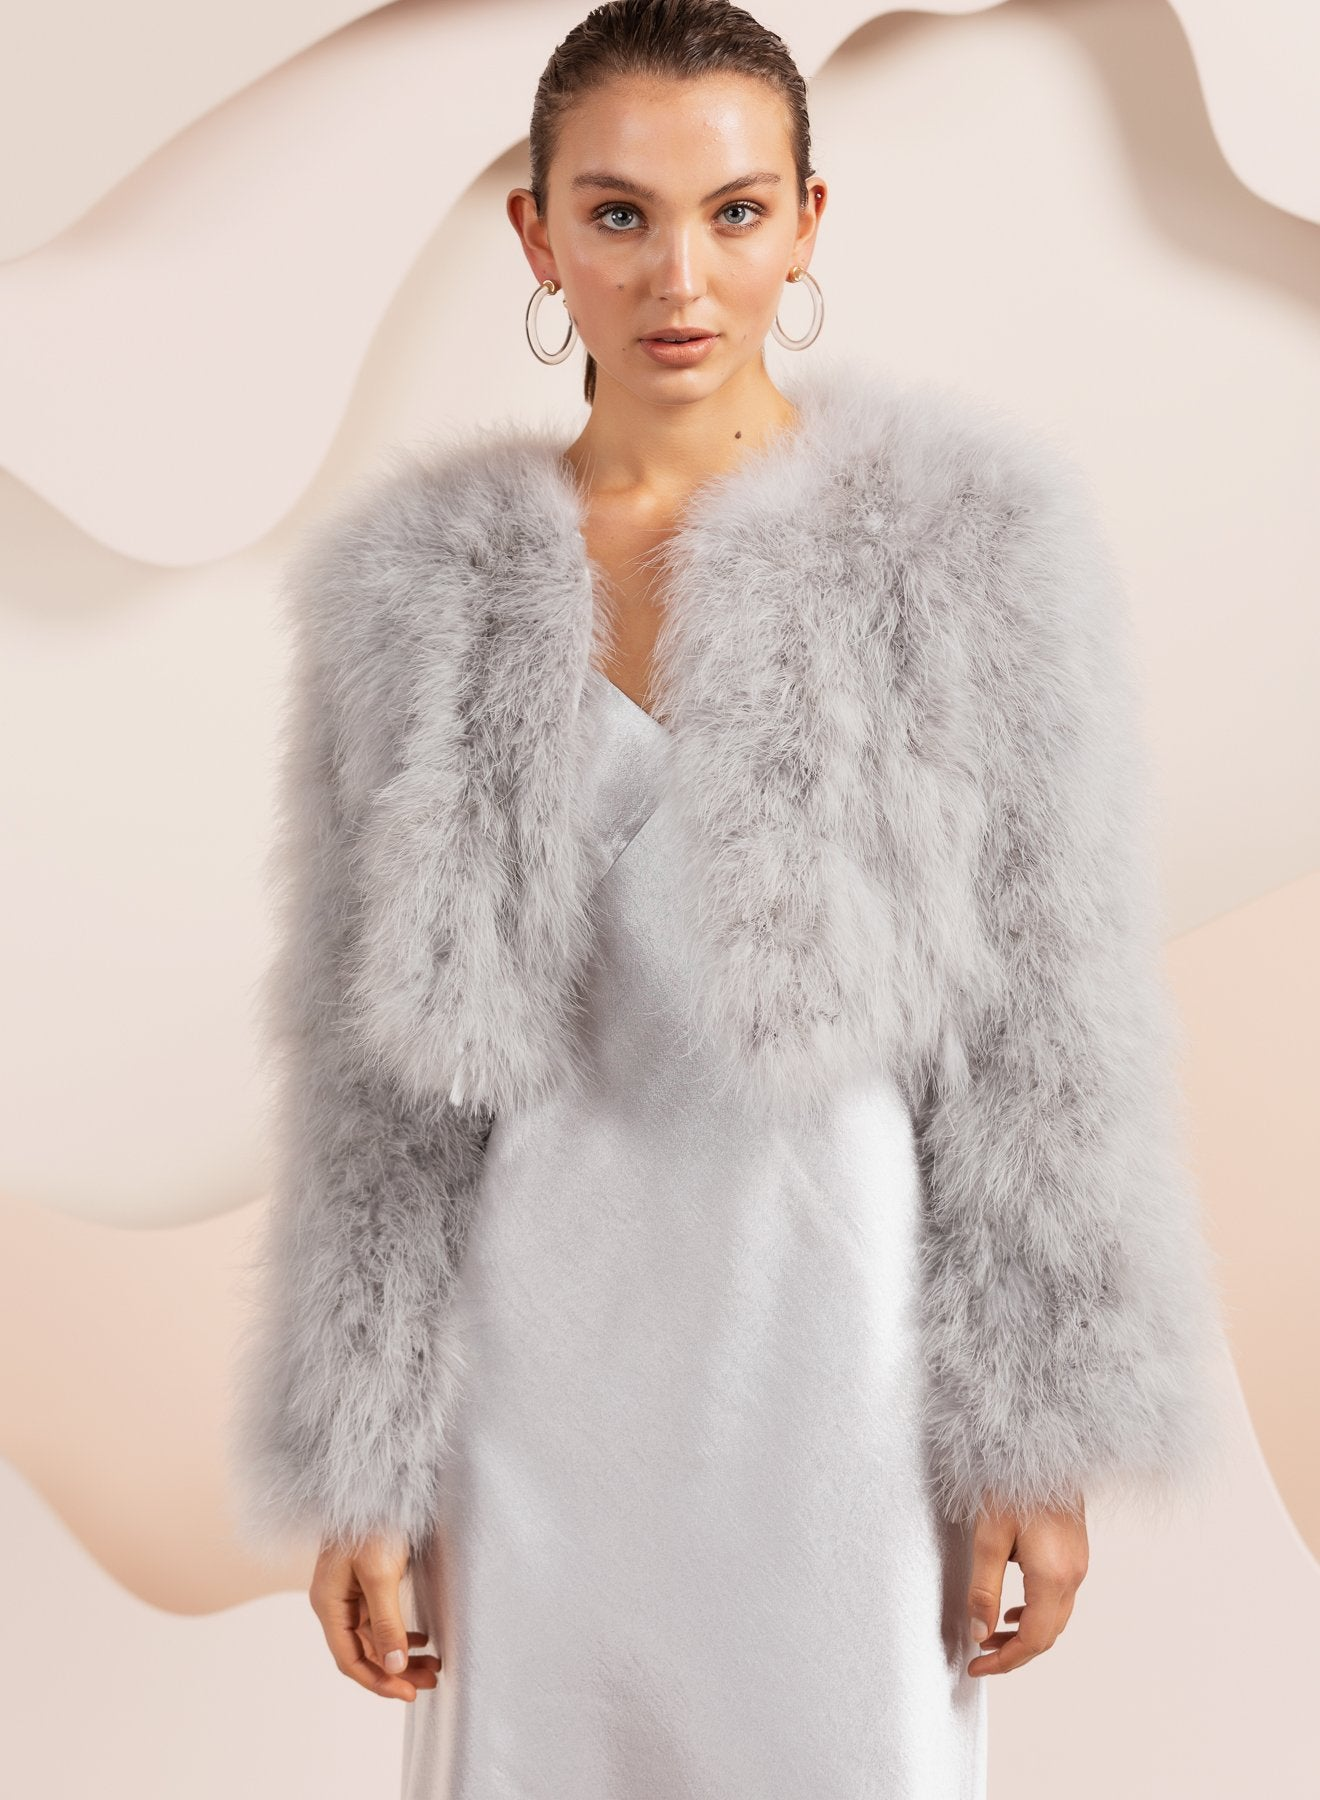 bubish Bridal feather jacket in light grey